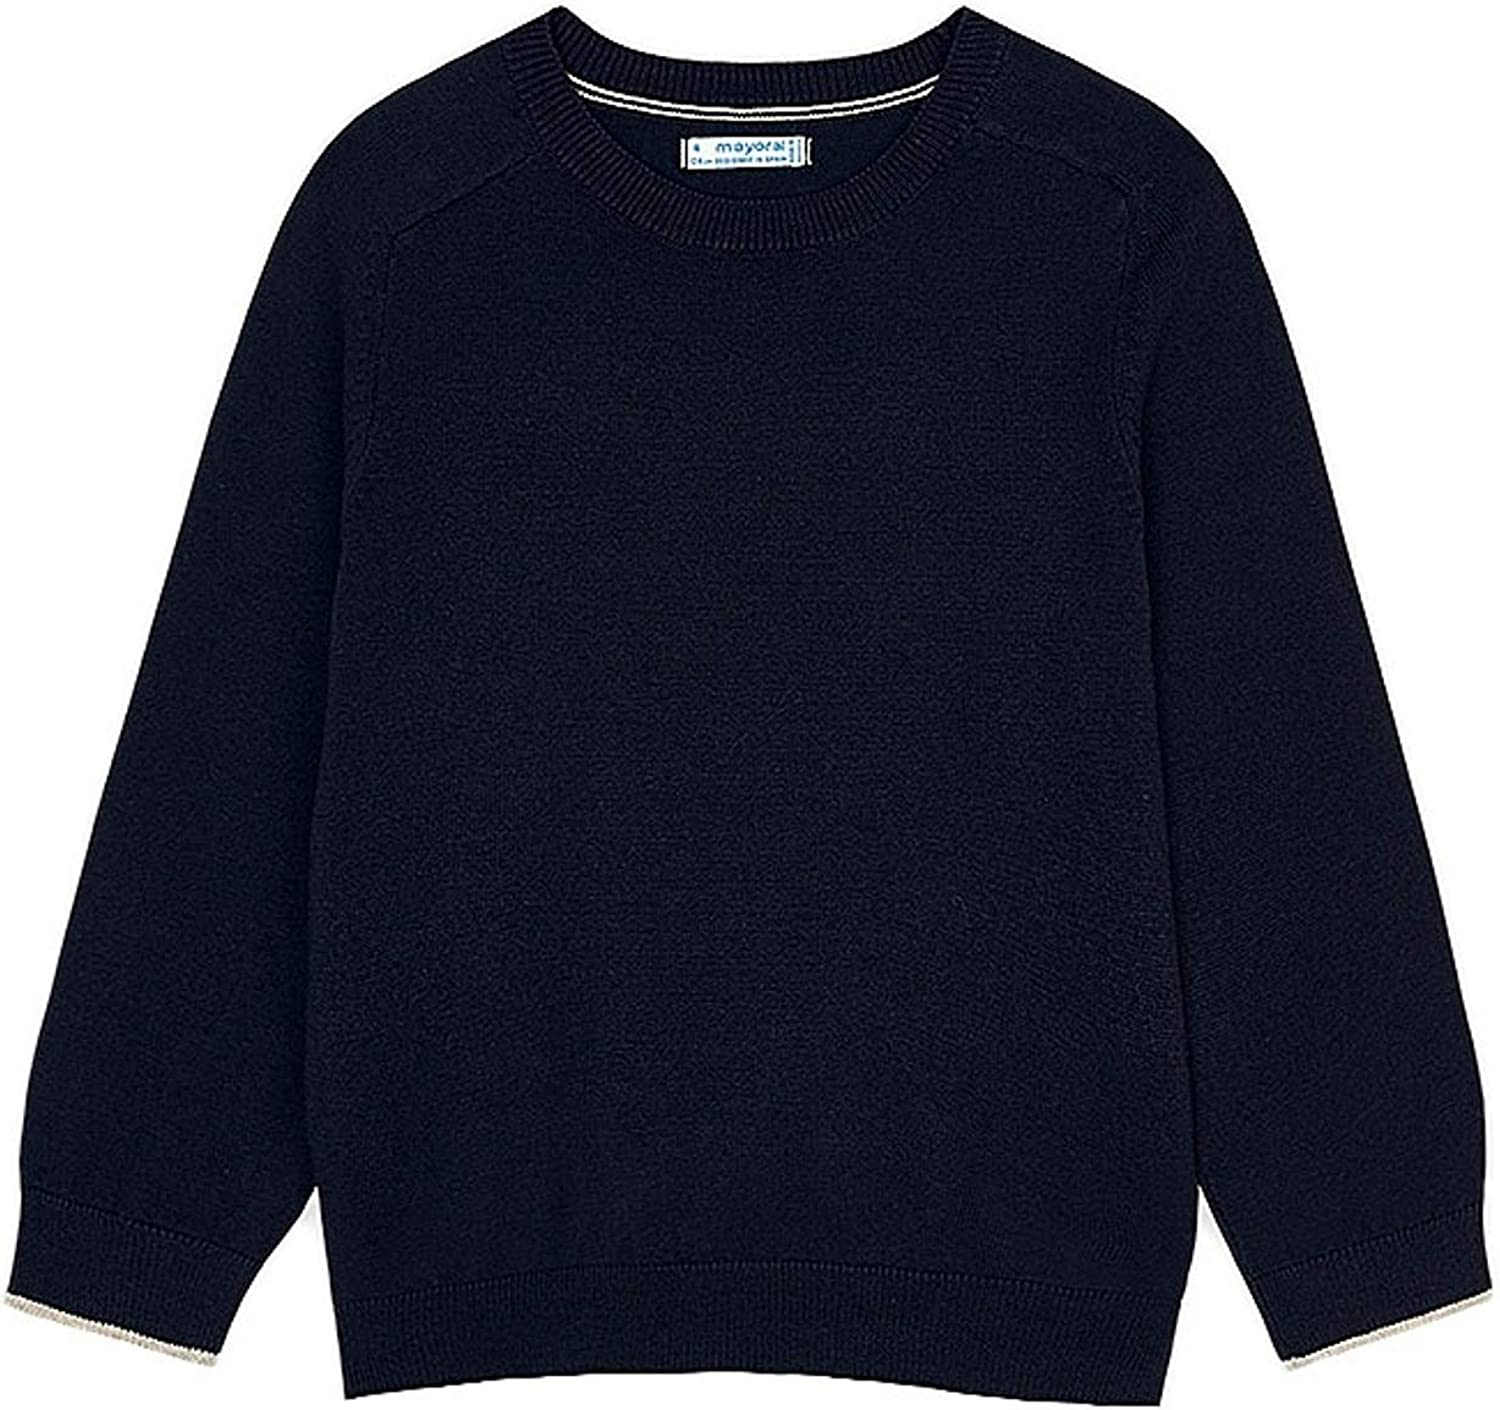 Mayoral - Basic Cotton Sweater w/Round for Boys - 0323, Navy